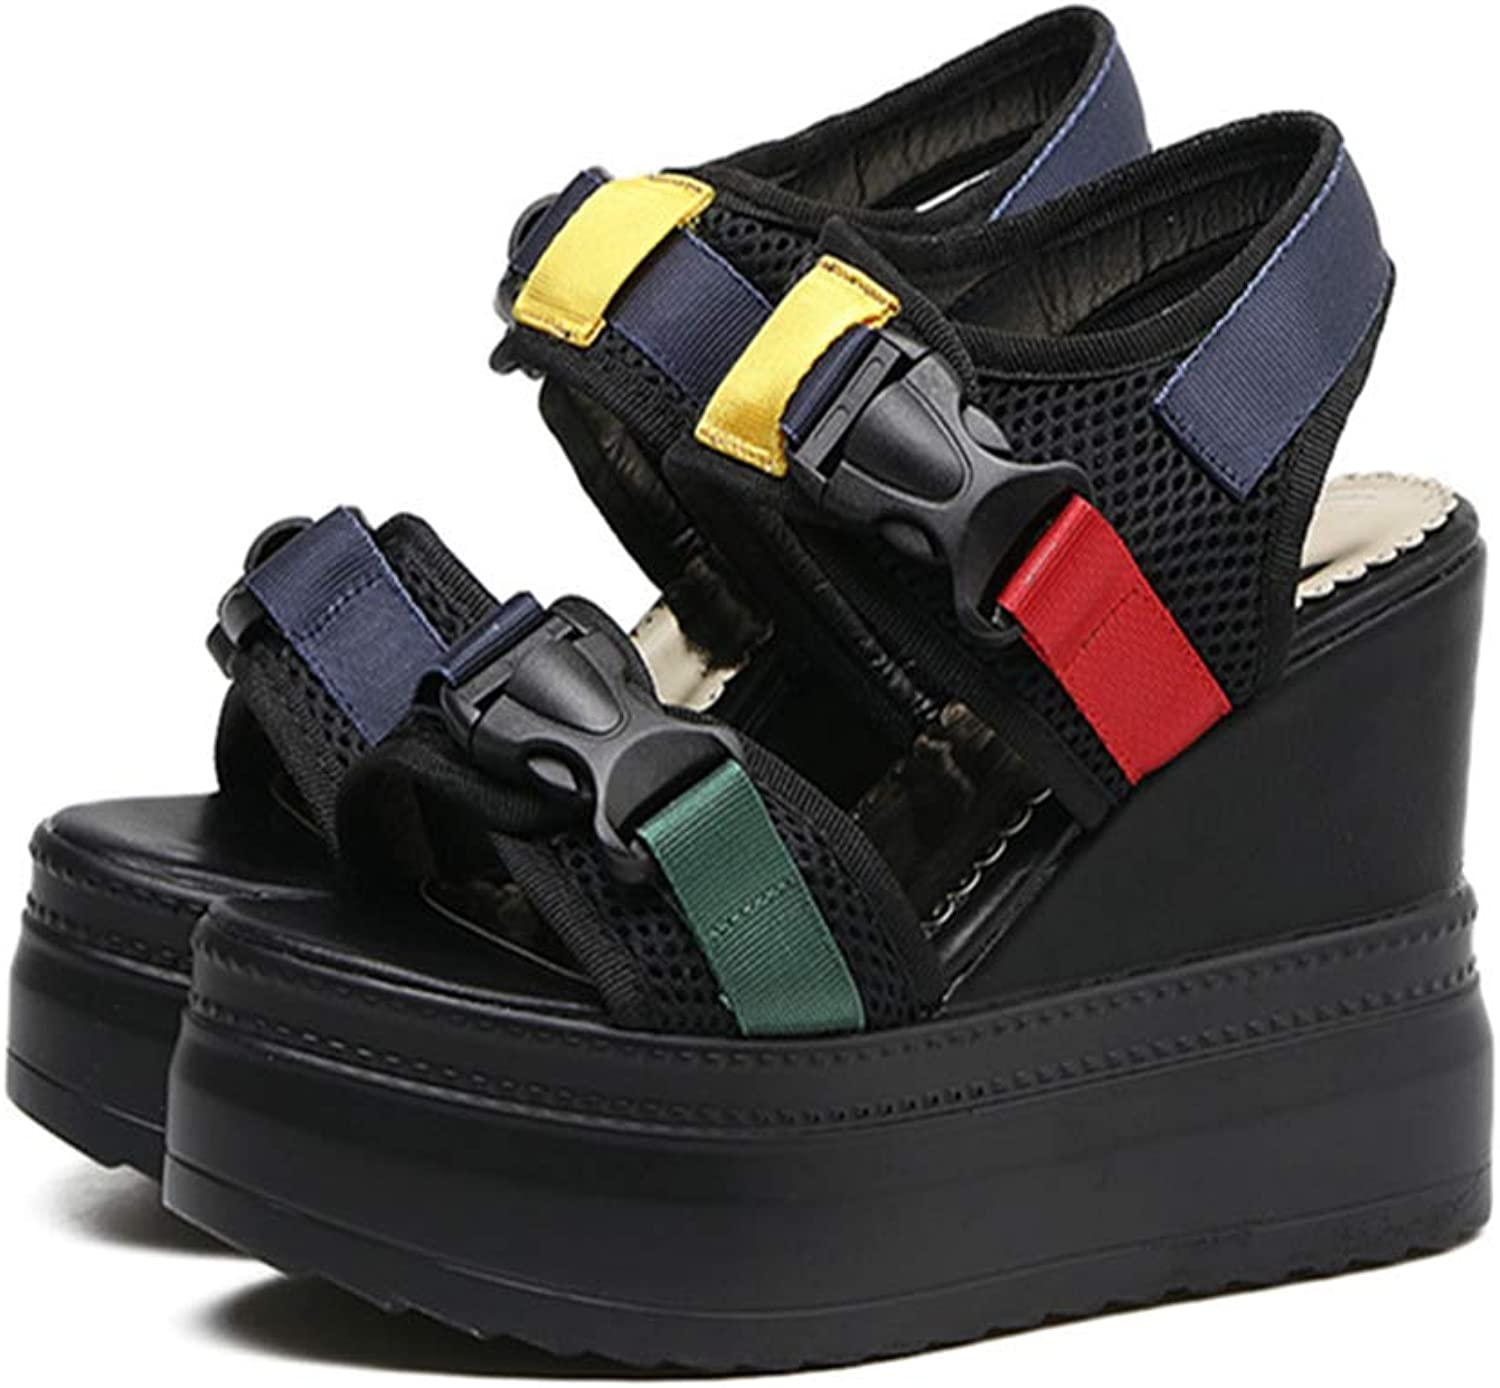 Betly 2019 Summer Flats shoes Woman Fashion Mixed colors Platform Wedge Women Sandals Casual air mesh Buckle Female shoes Chaussure